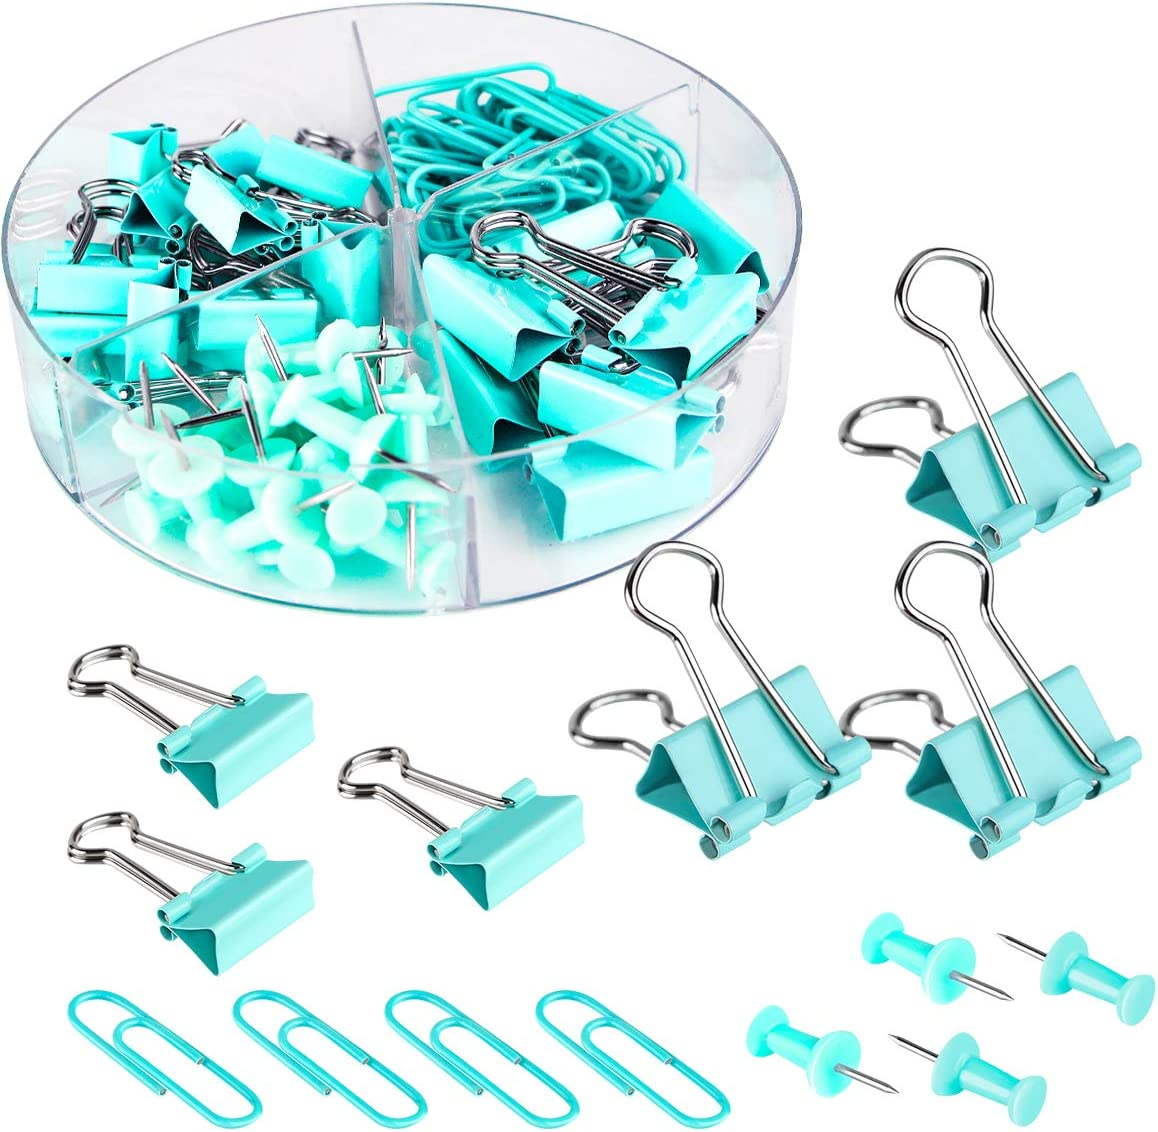 Push Pins Binder Clips Paperclips Sets for Office, School and Home Supplies, Desk Organized, 72 Pcs Assorted Sizes (Blue)